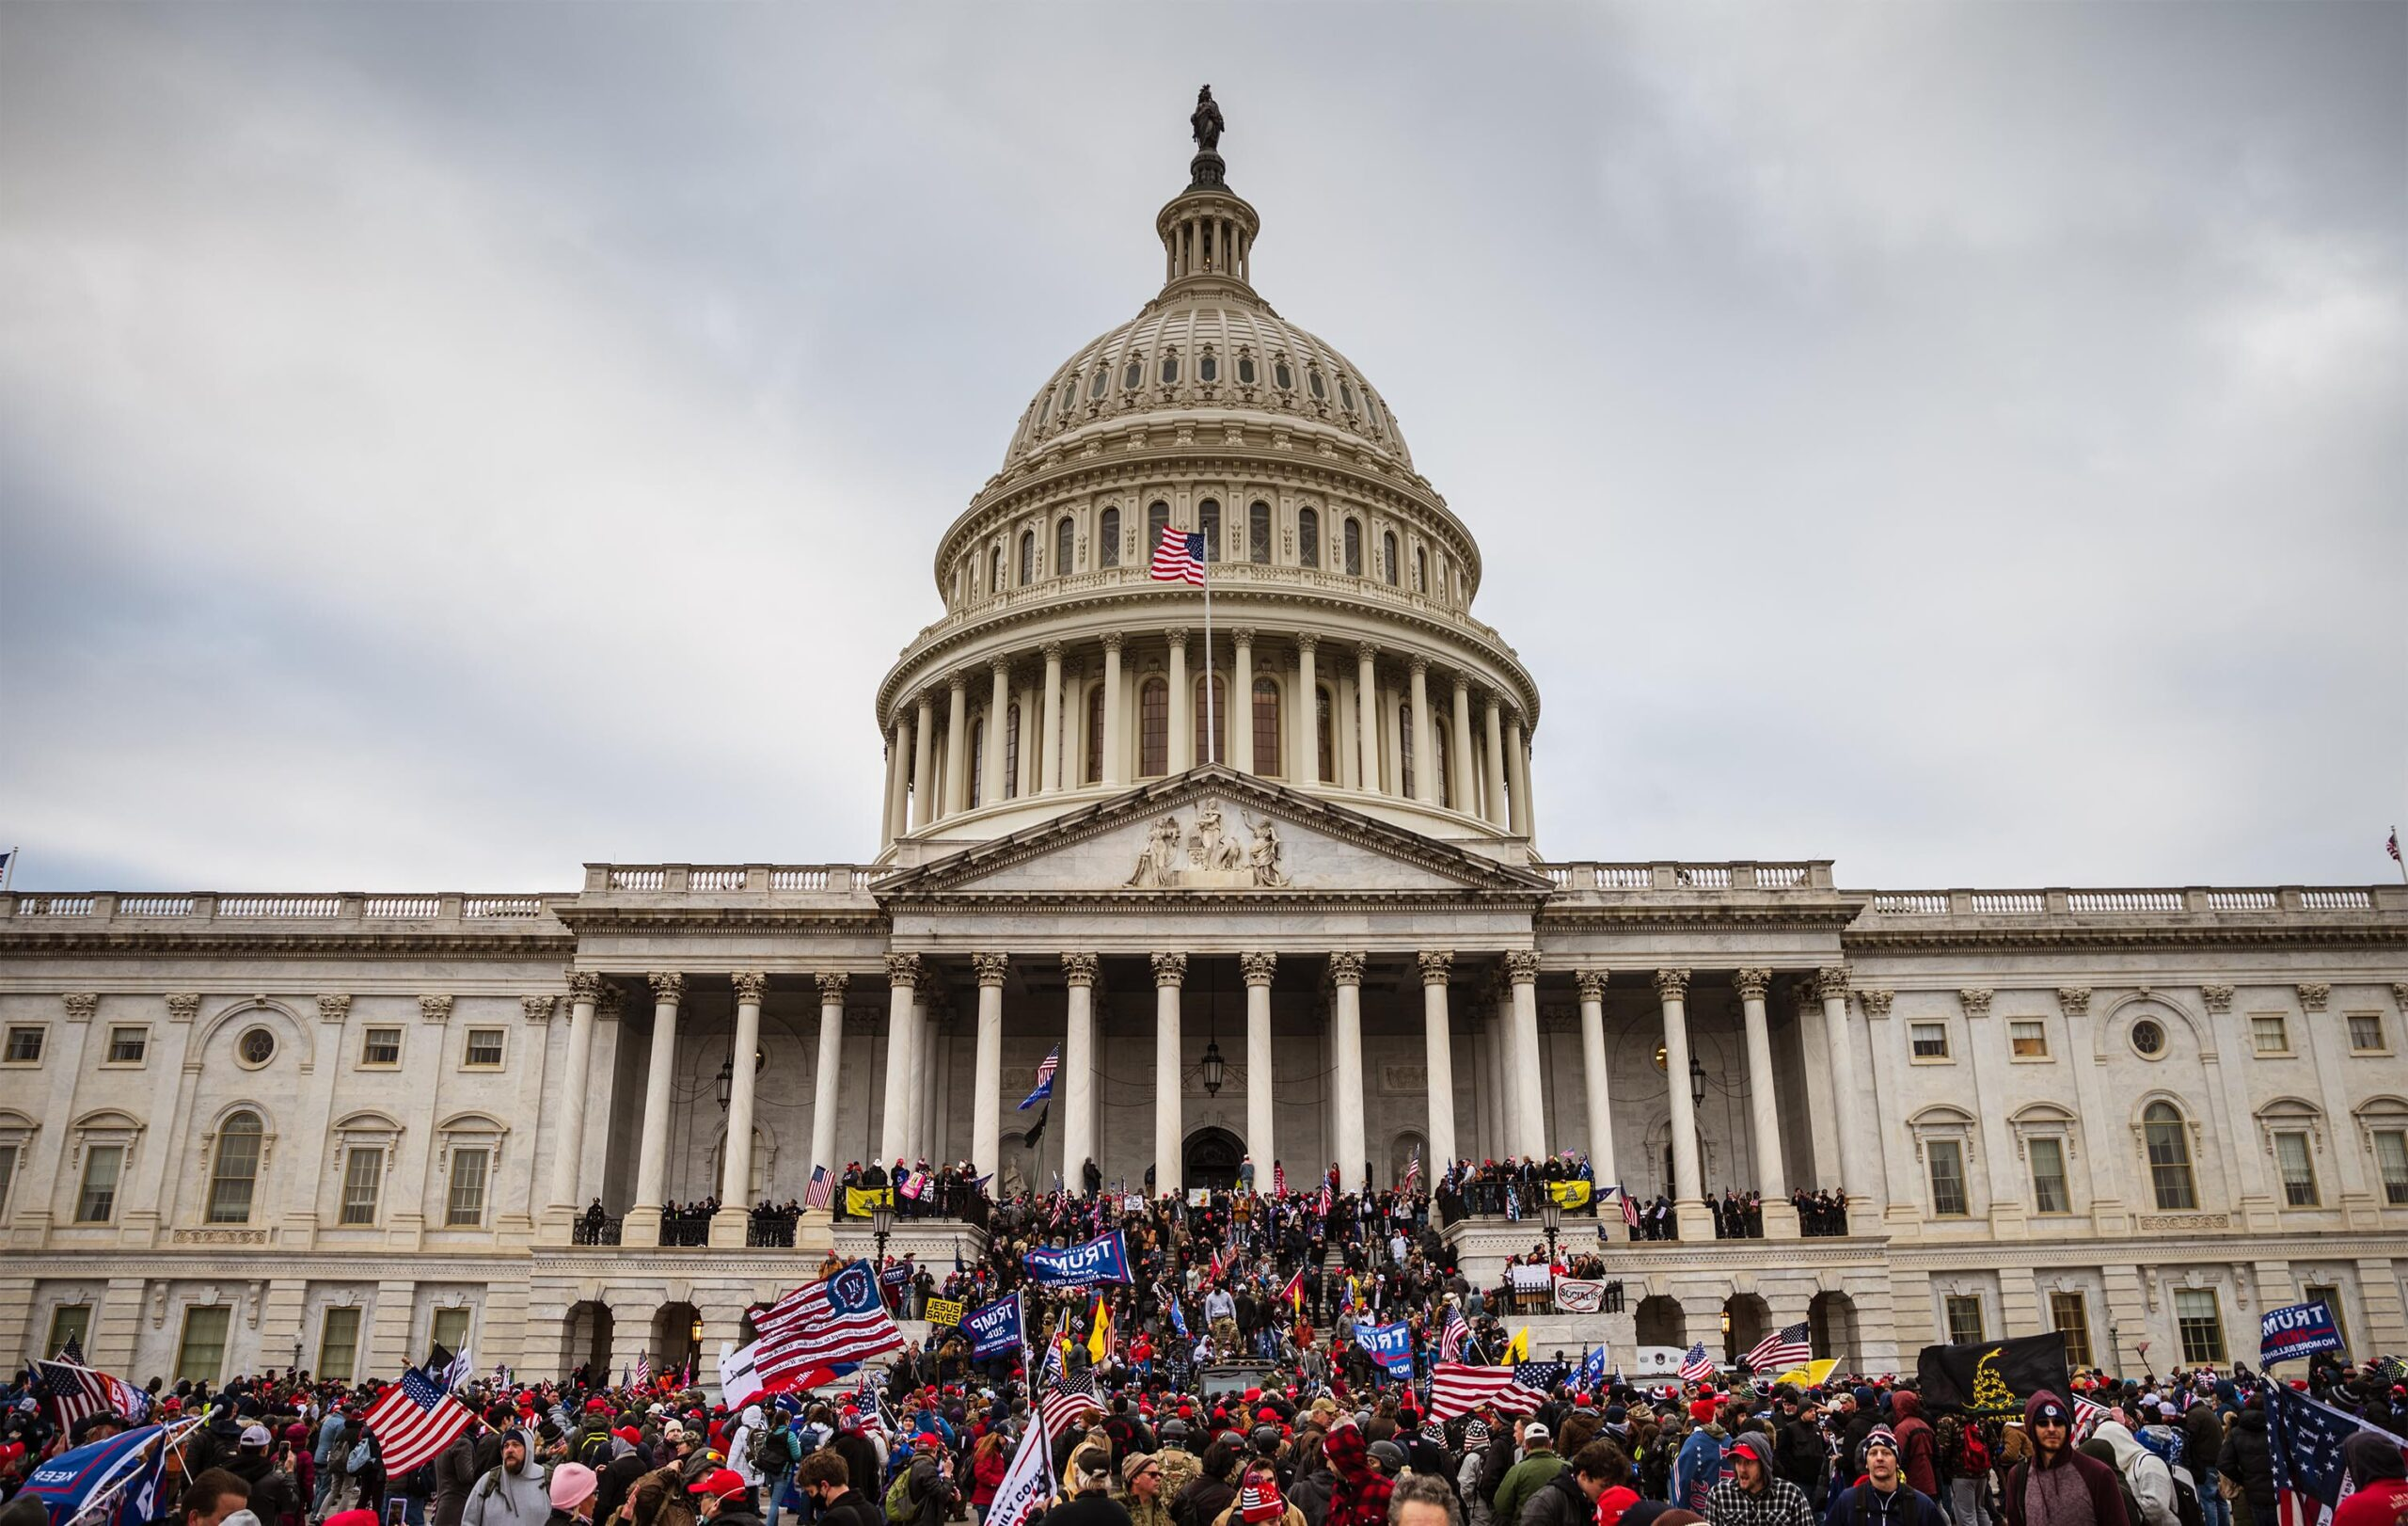 <i>Jon Cherry/Getty Images</i><br/>A large group of rioters stand on the East steps of the Capitol Building after storming its grounds on January 6